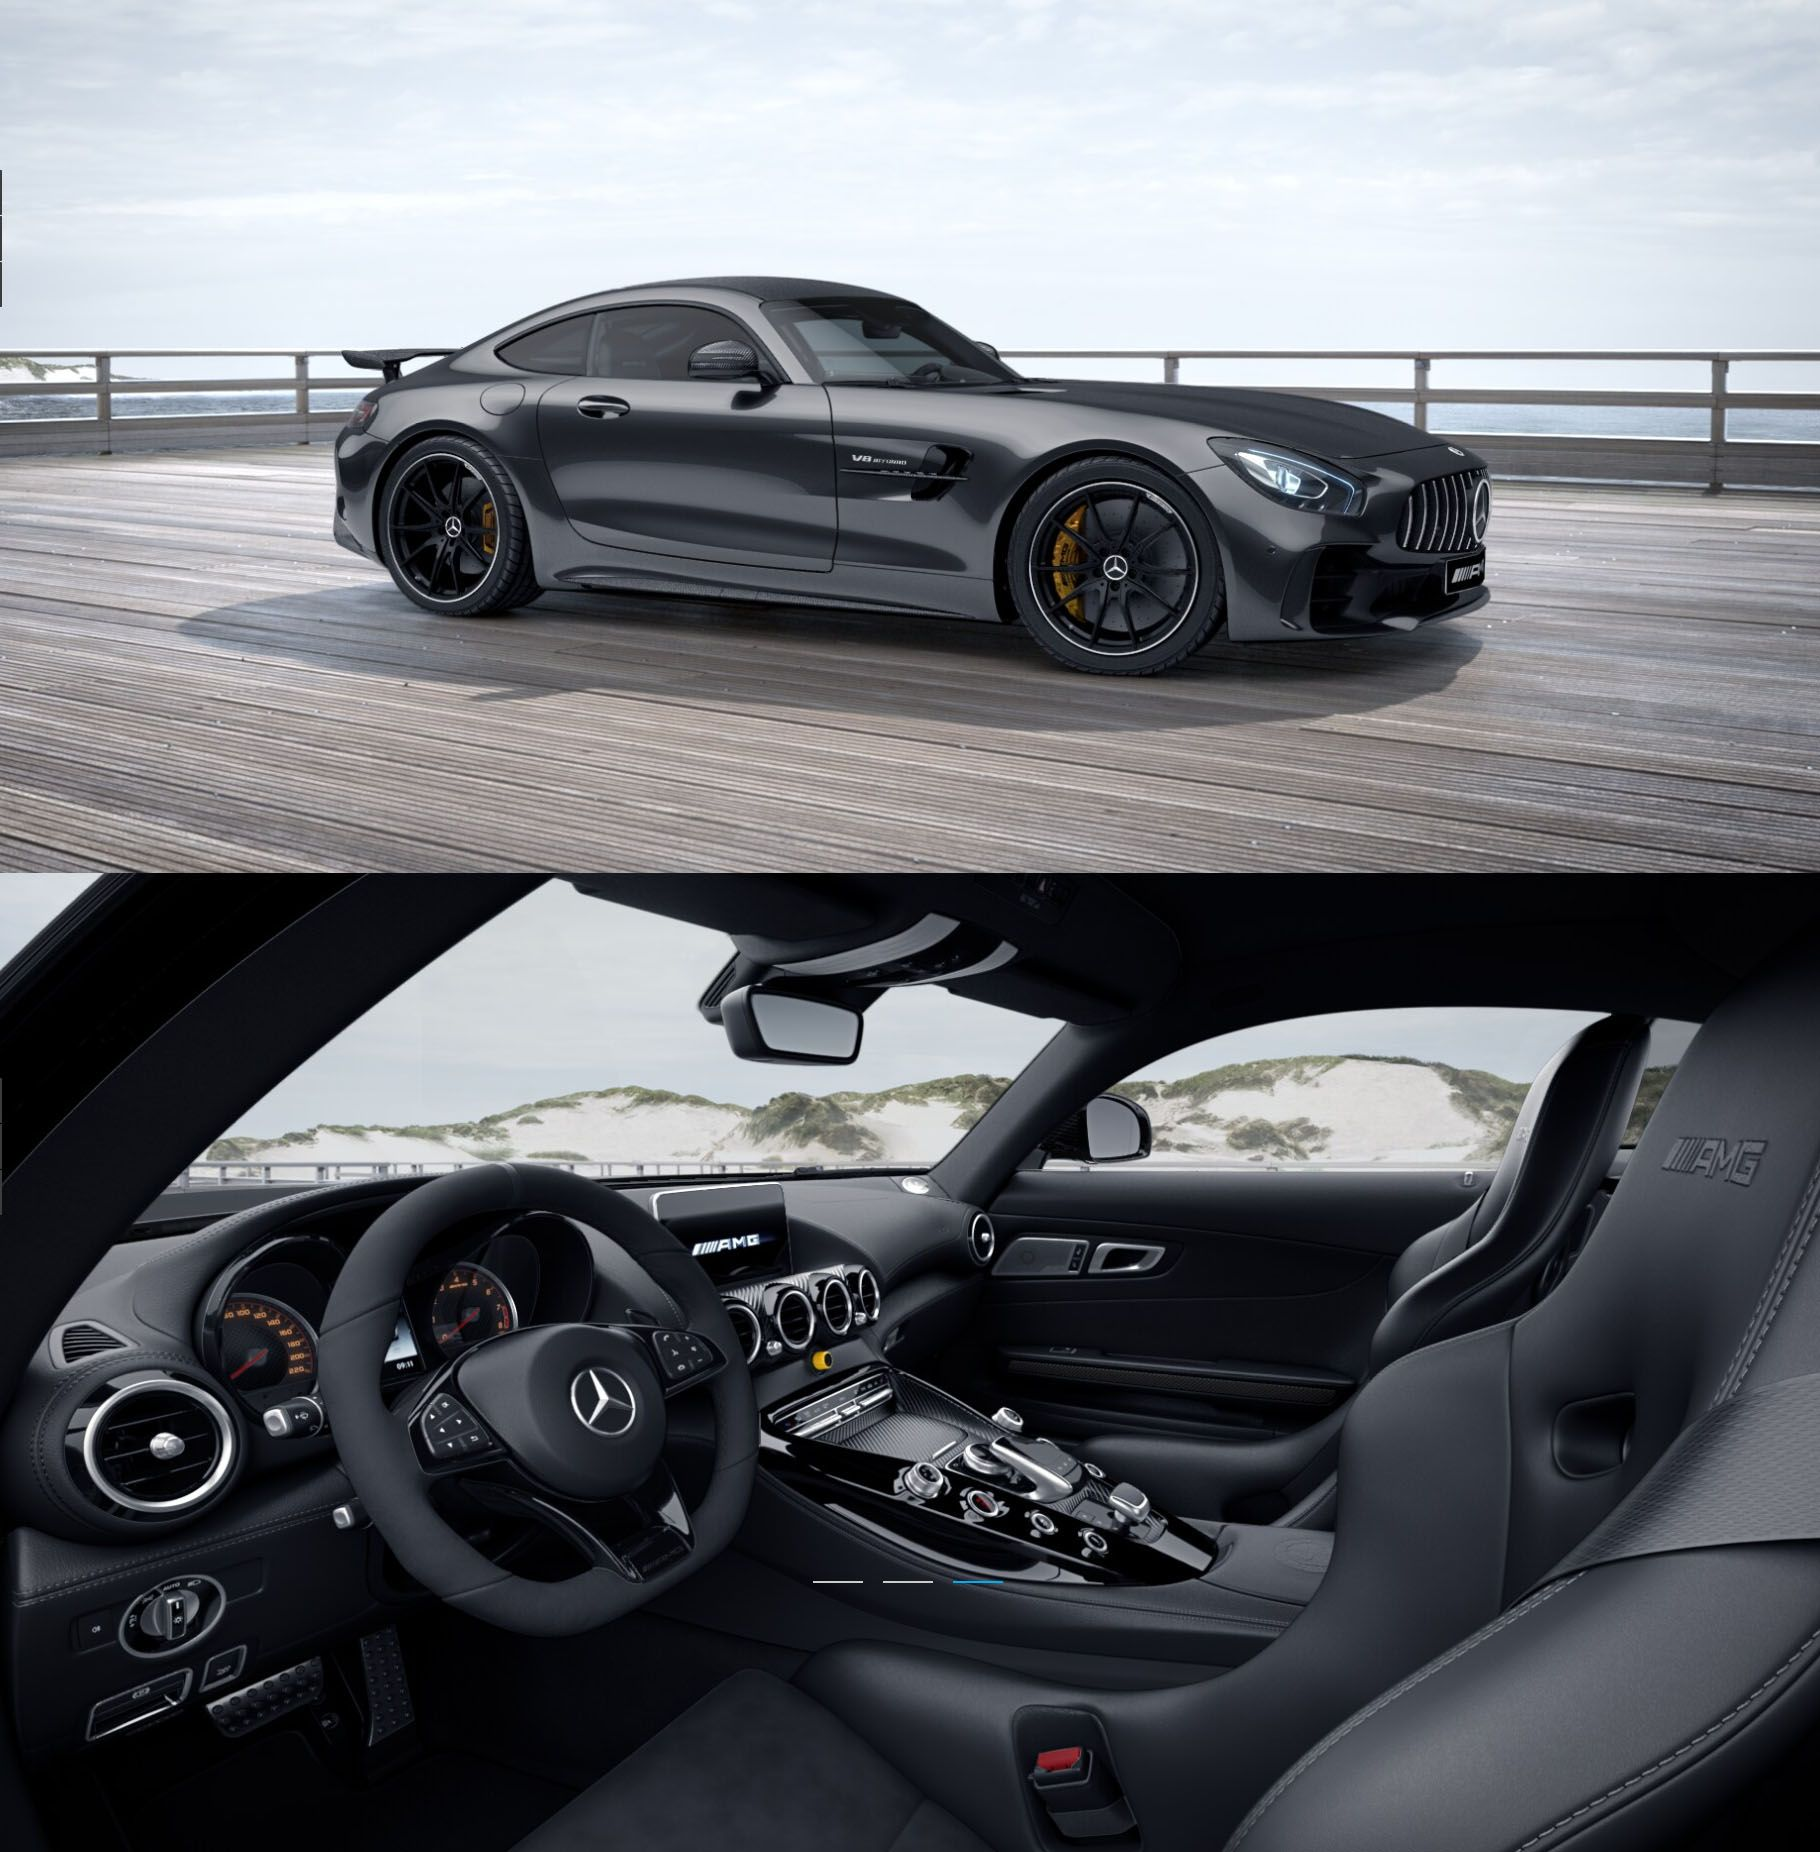 Mercedes Amg Gtr Coupe In Magnetite Black With Exterior And